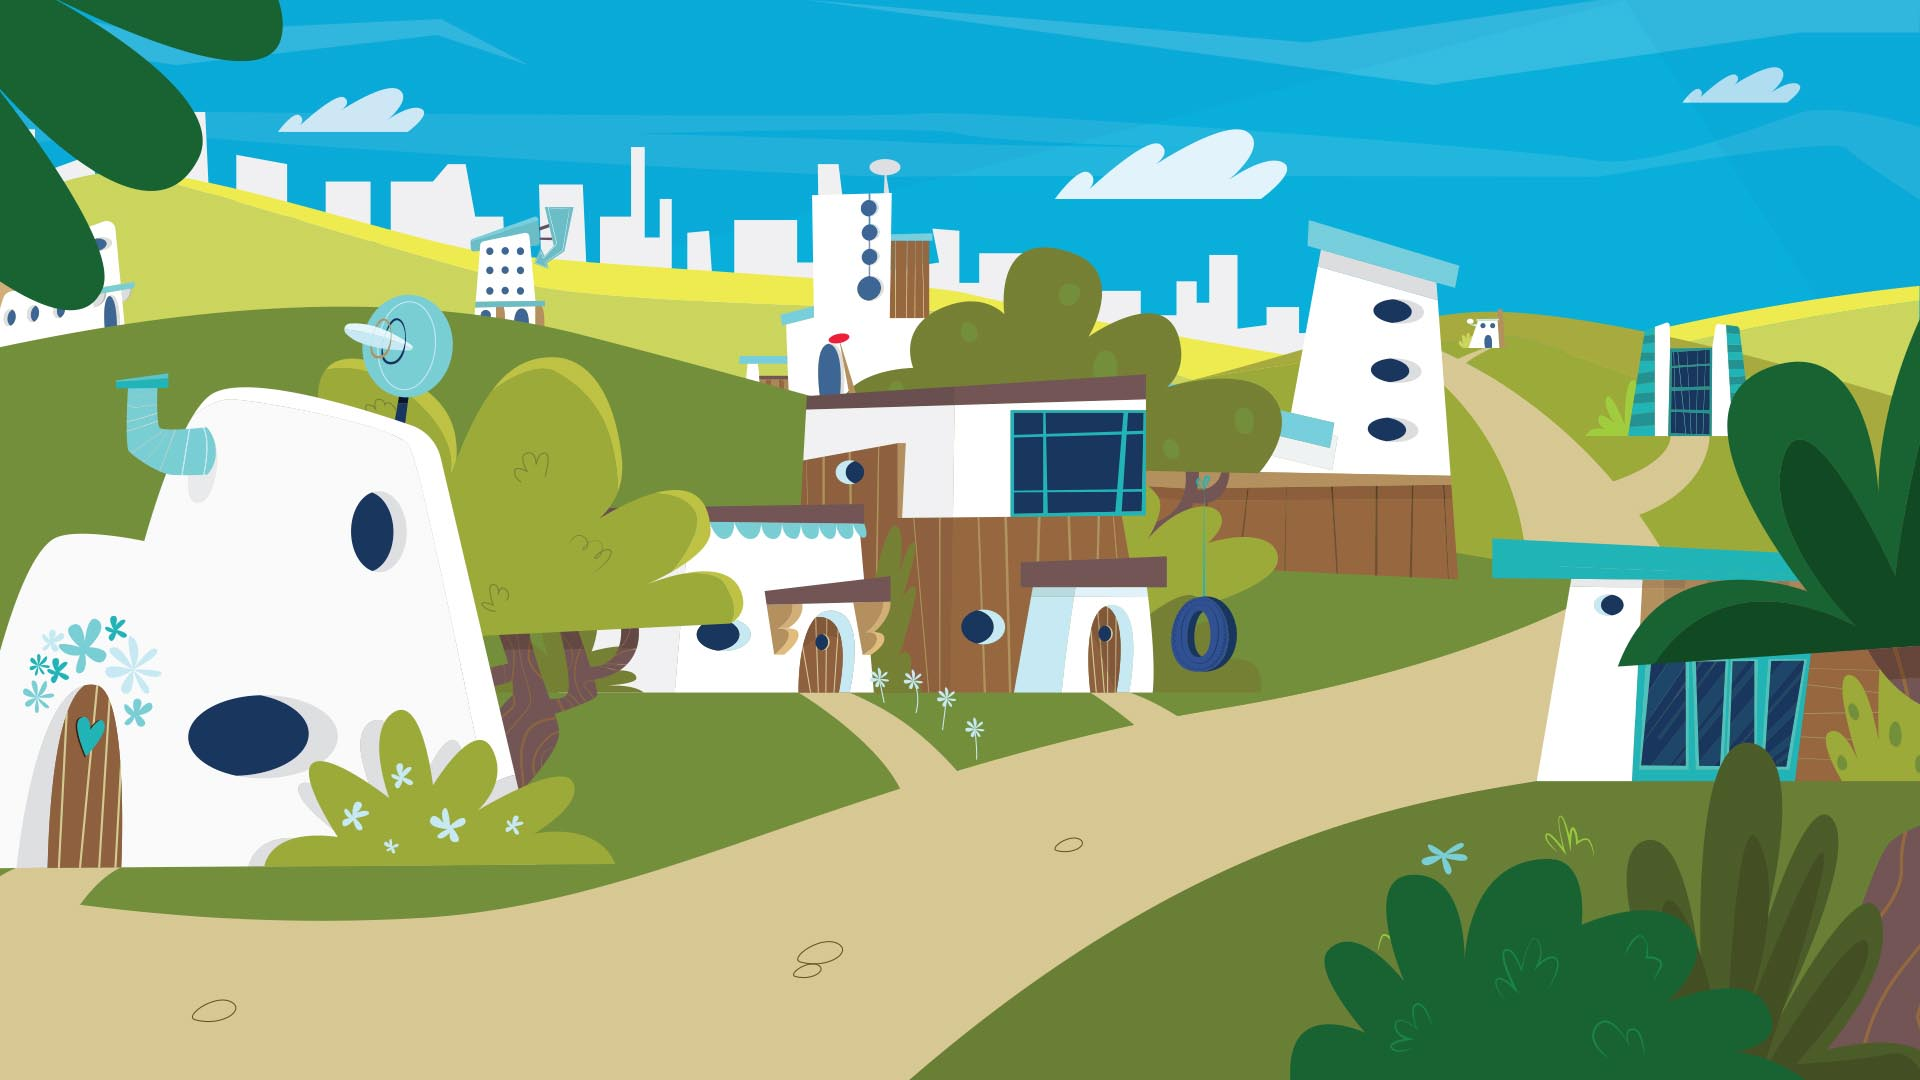 2D animated pretty town